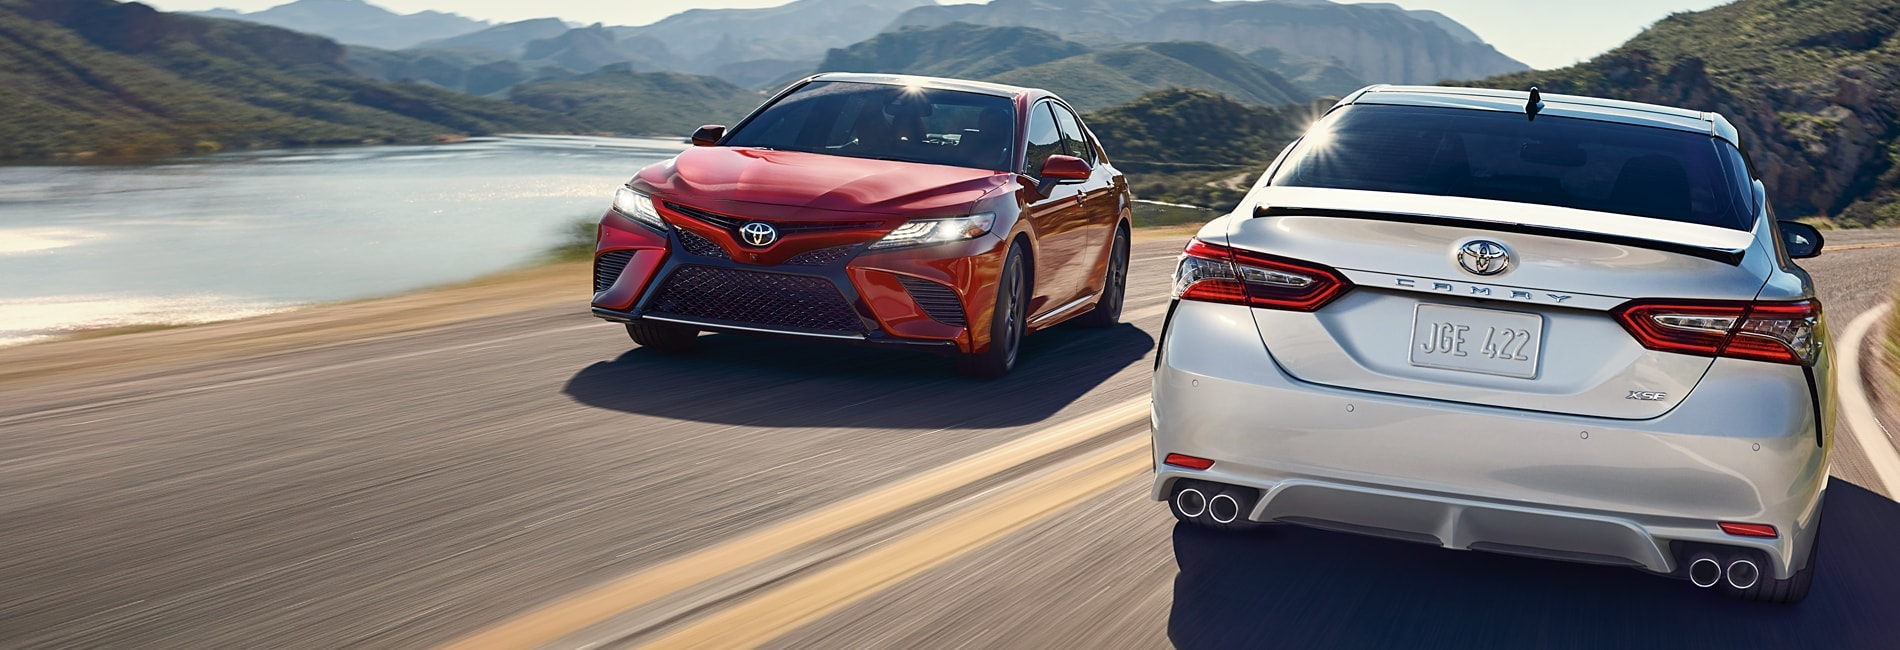 Toyota Camry Exterior Vehicle Features